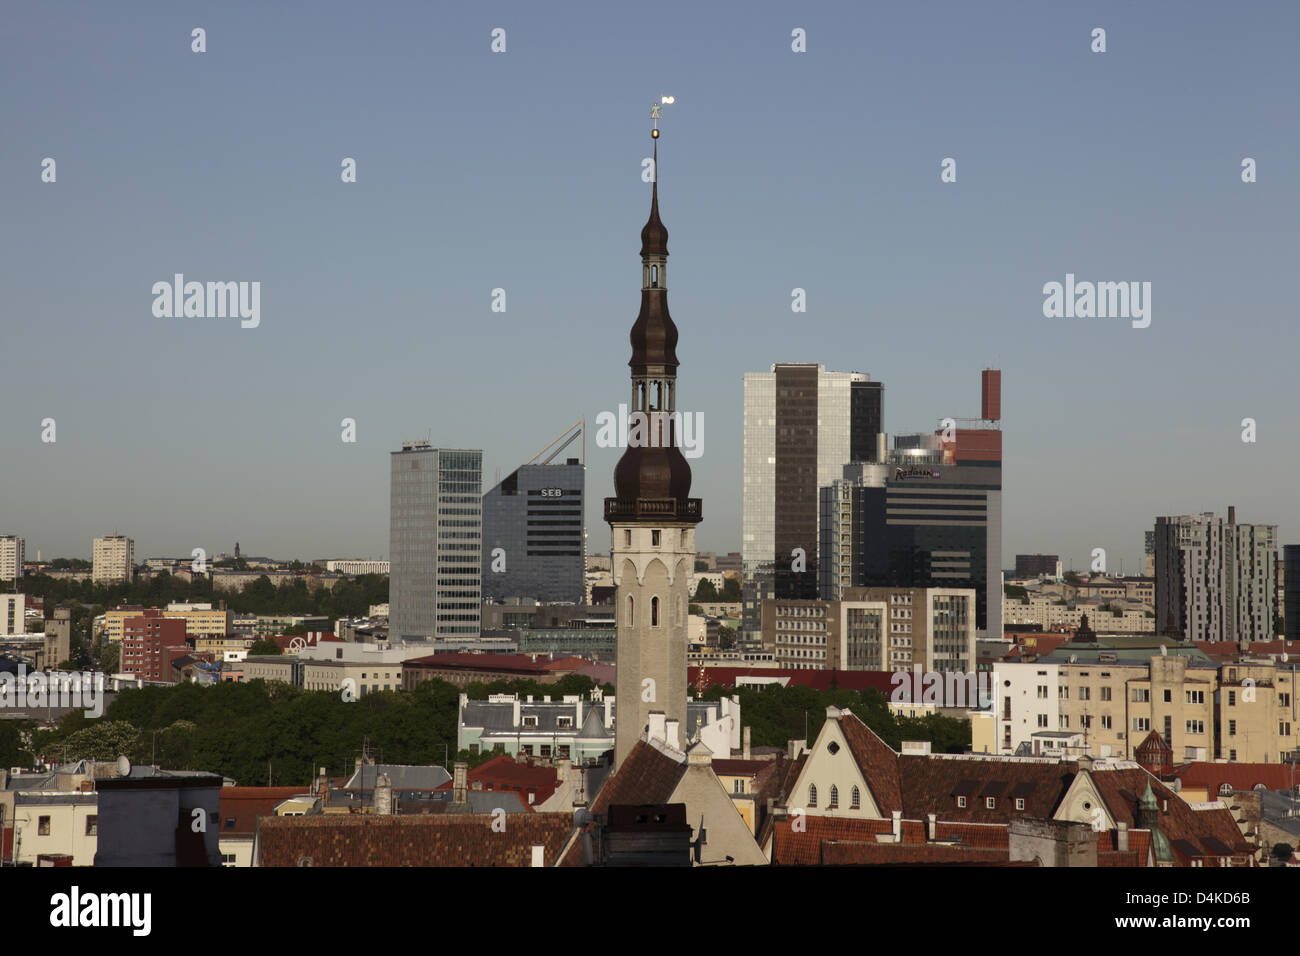 The tower of the the old town hall and modern buildings are pictured in Tallinn, Estonia, June 2009. The old town Stock Photo